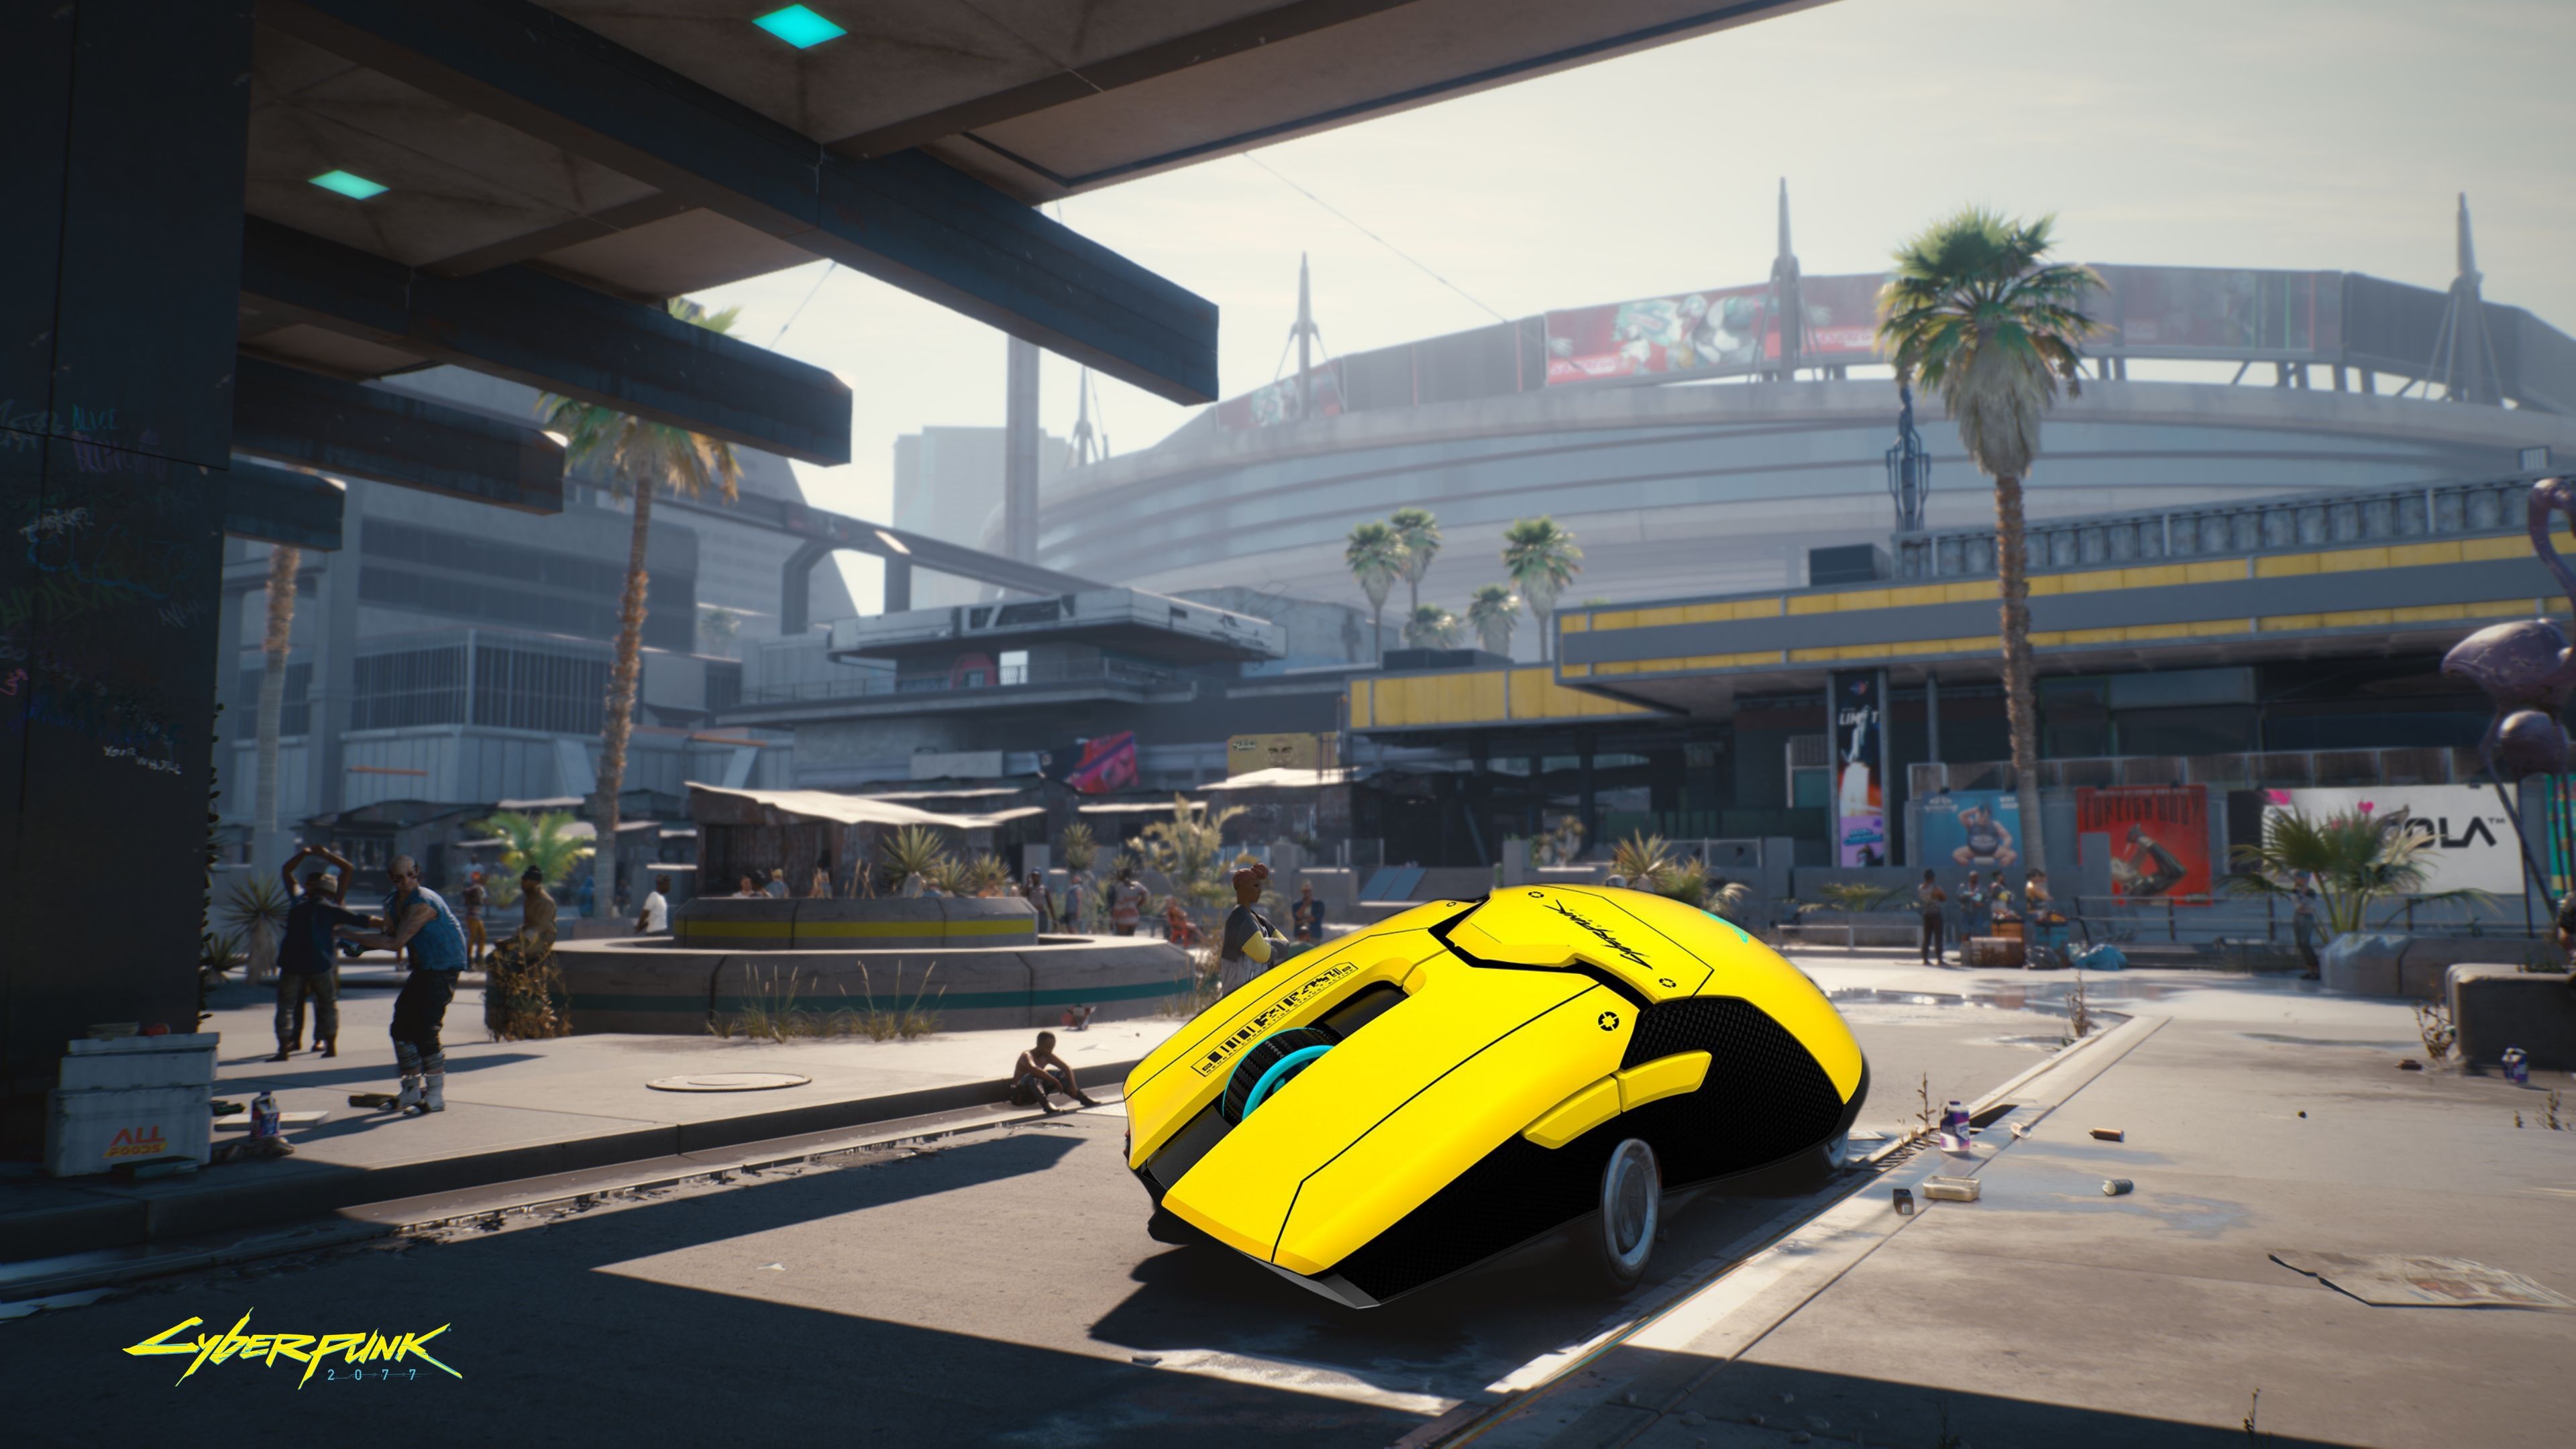 A screenshot of a car on the street in Cyberpunk 2077, except it is actually a giant Razer Viper Cyberpunk 2077 mouse